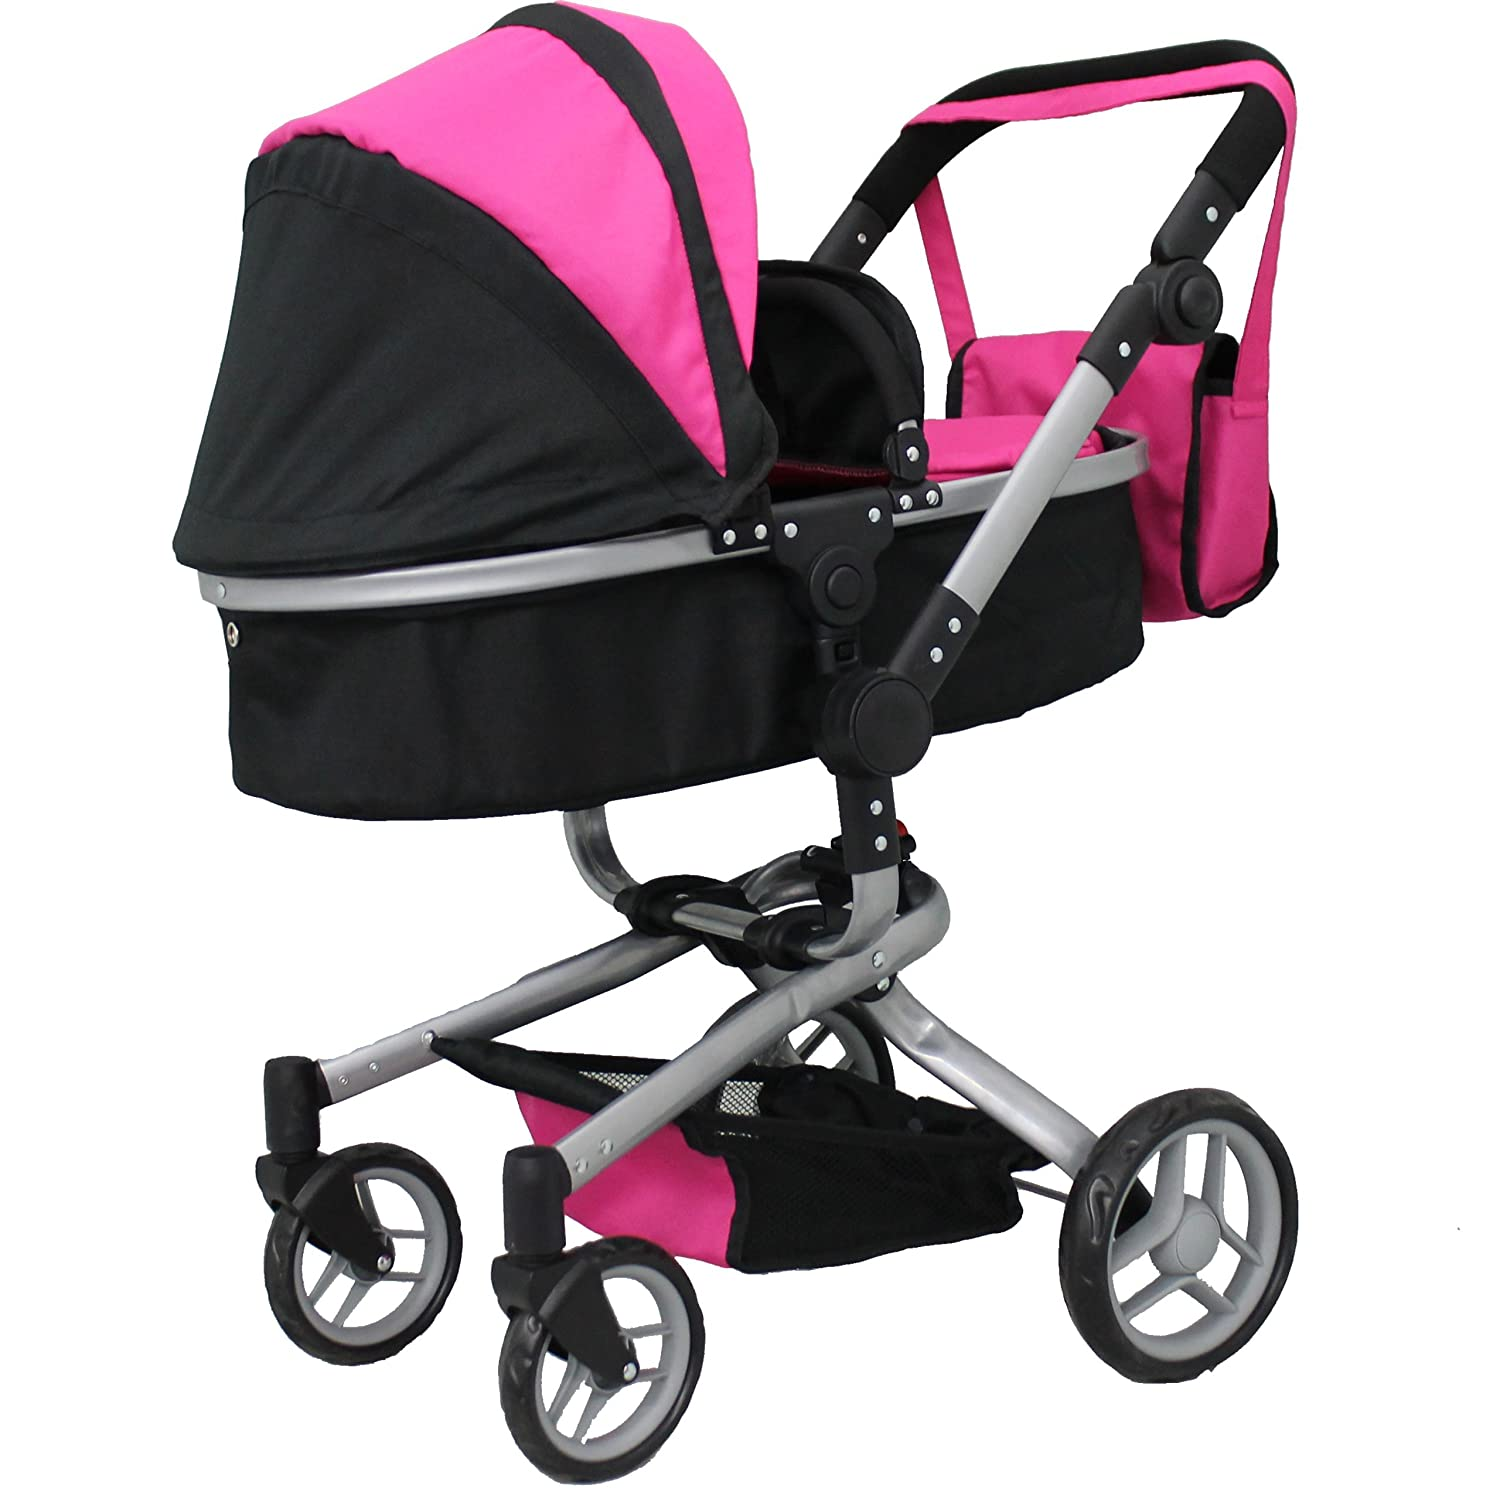 Amazon Mommy & me 2 in 1 Deluxe doll stroller EXTRA TALL 32 HIGH view all photos 9695 Toys & Games